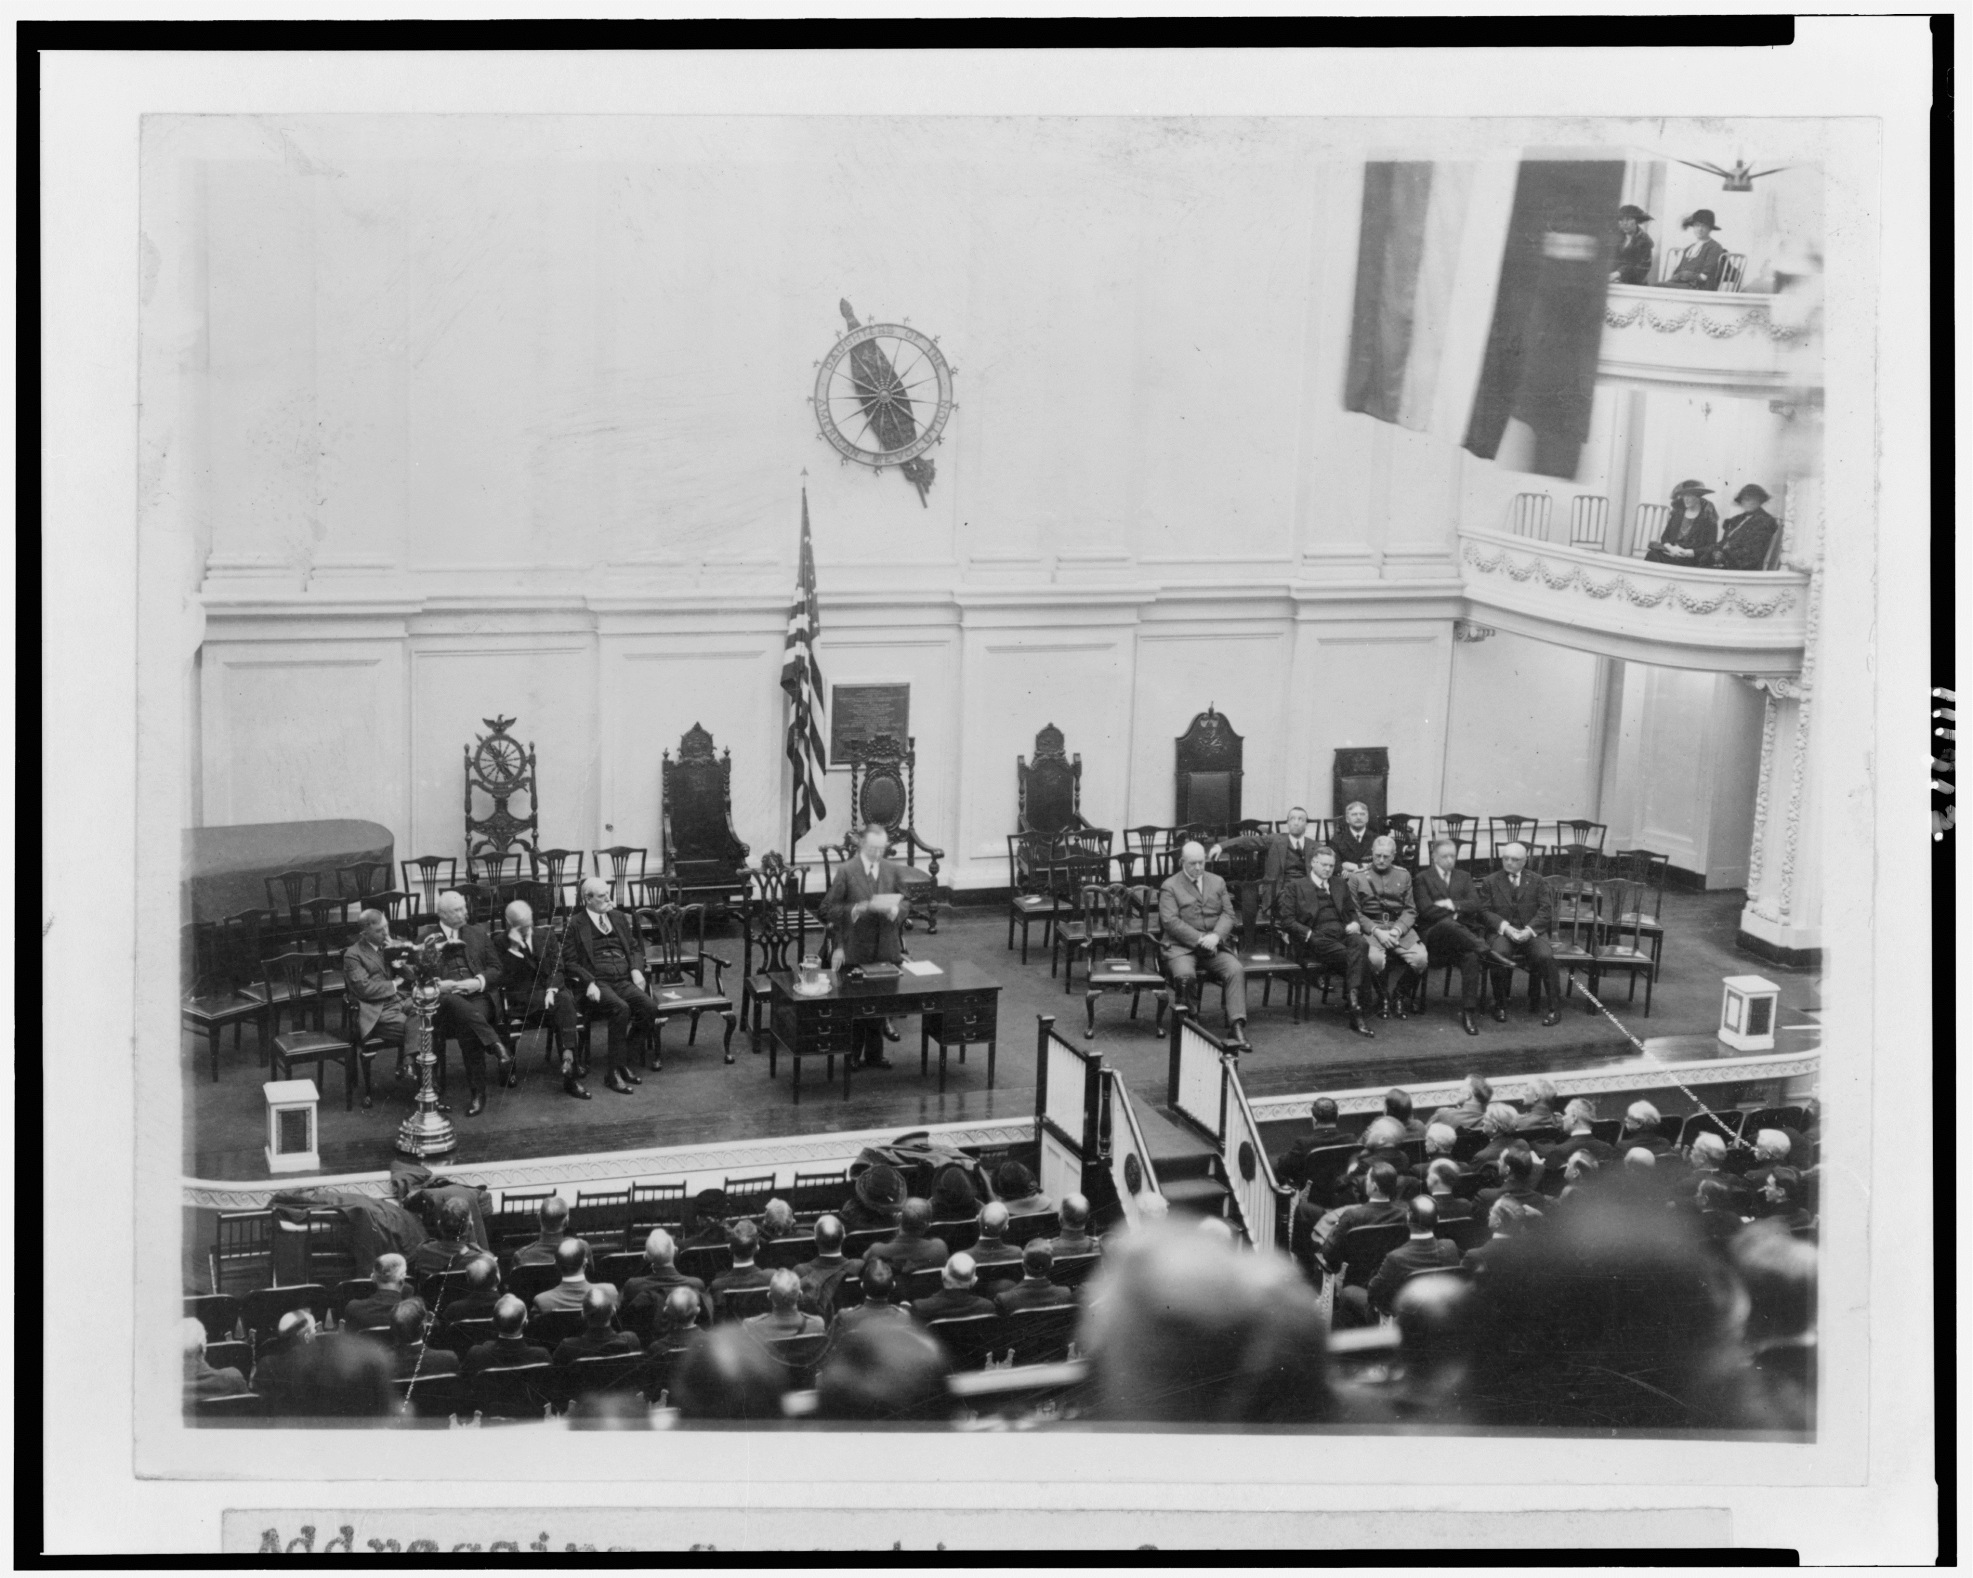 Coolidge speaks at the Budget Meeting in 1923